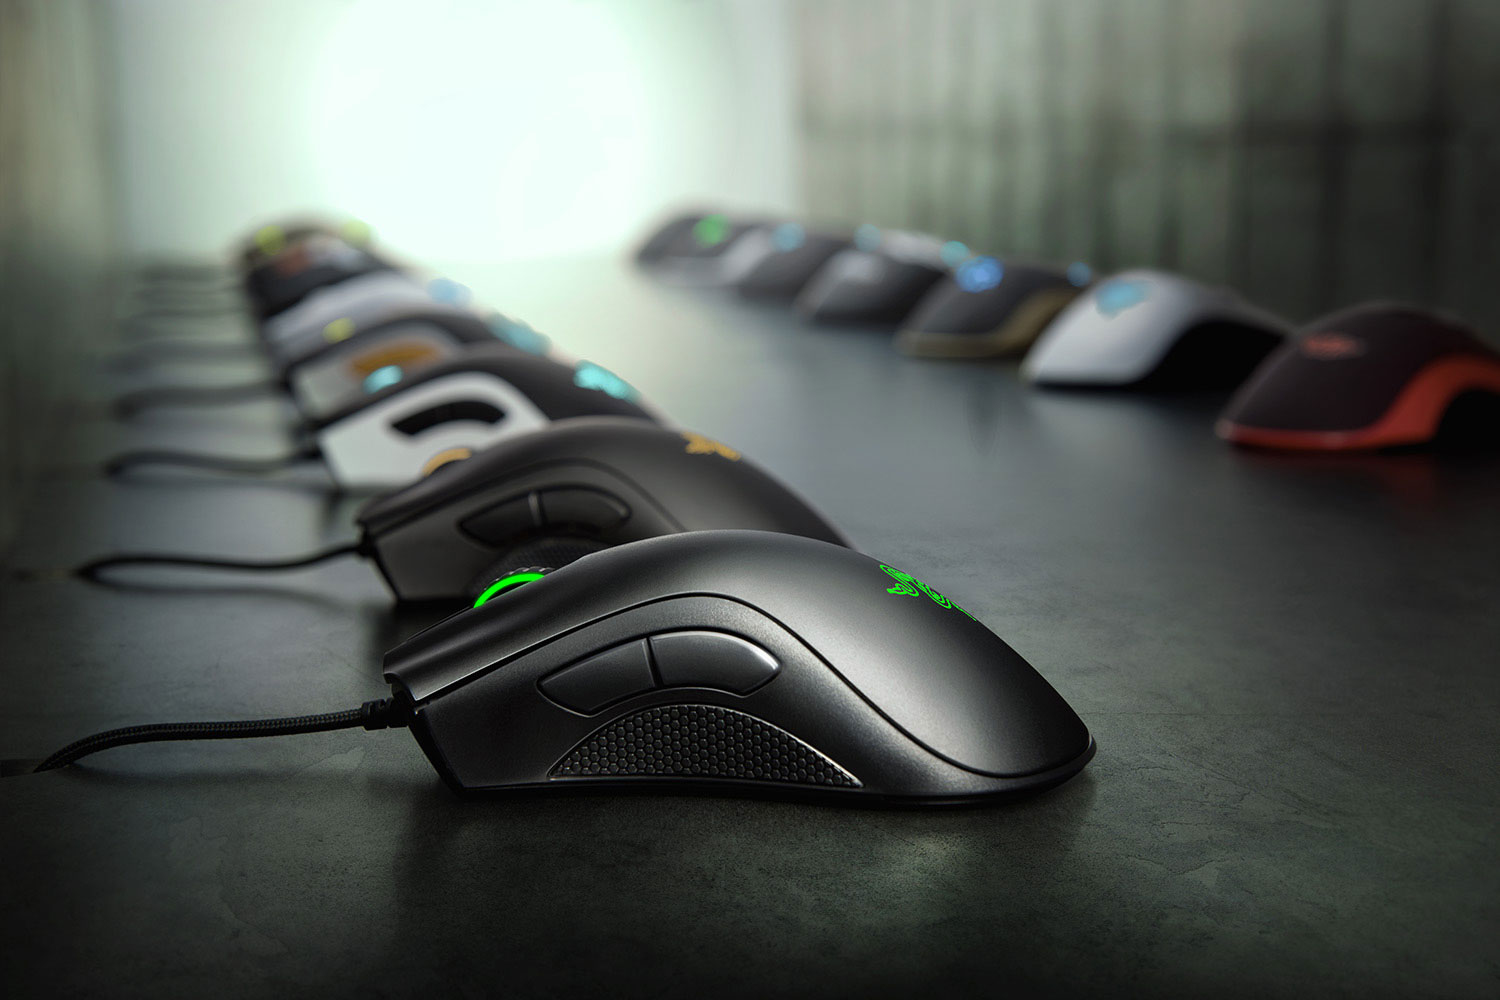 Details about New Razer Deathadder Essential Mice Usb Optical 6400 Dpi  RZ01-02540100-R3M1